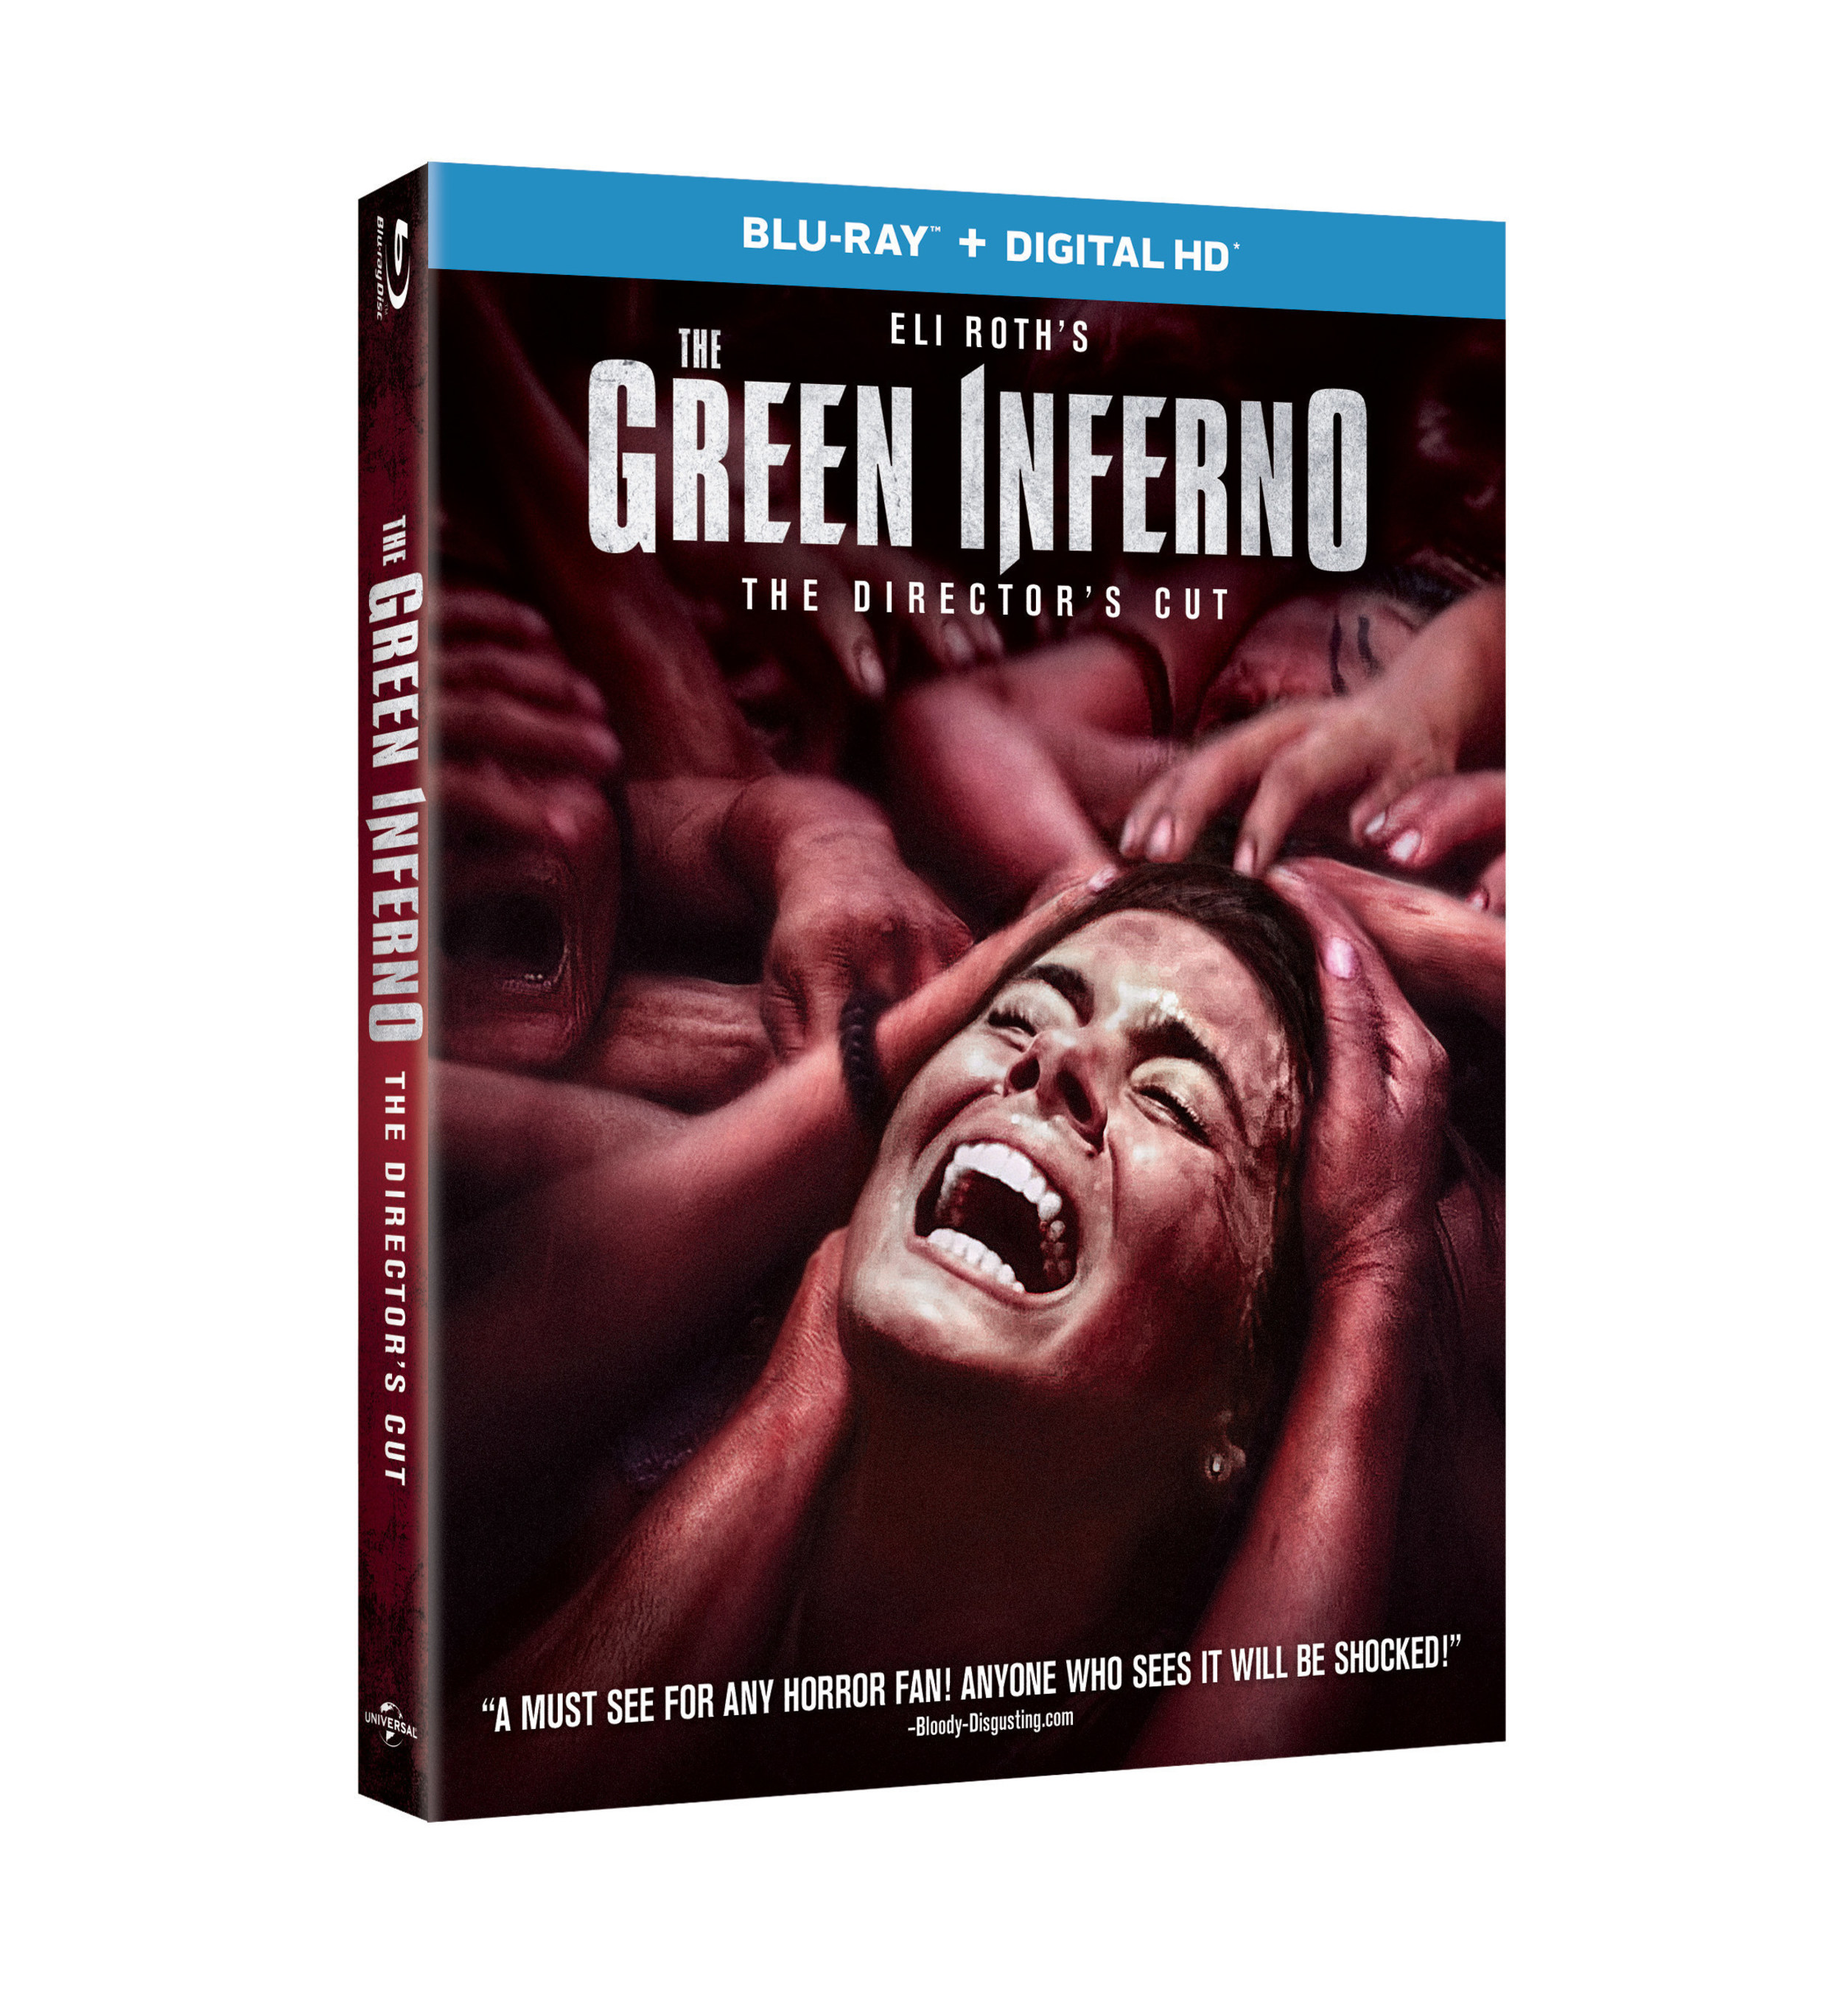 From Universal Pictures Home Entertainment: The Green Inferno